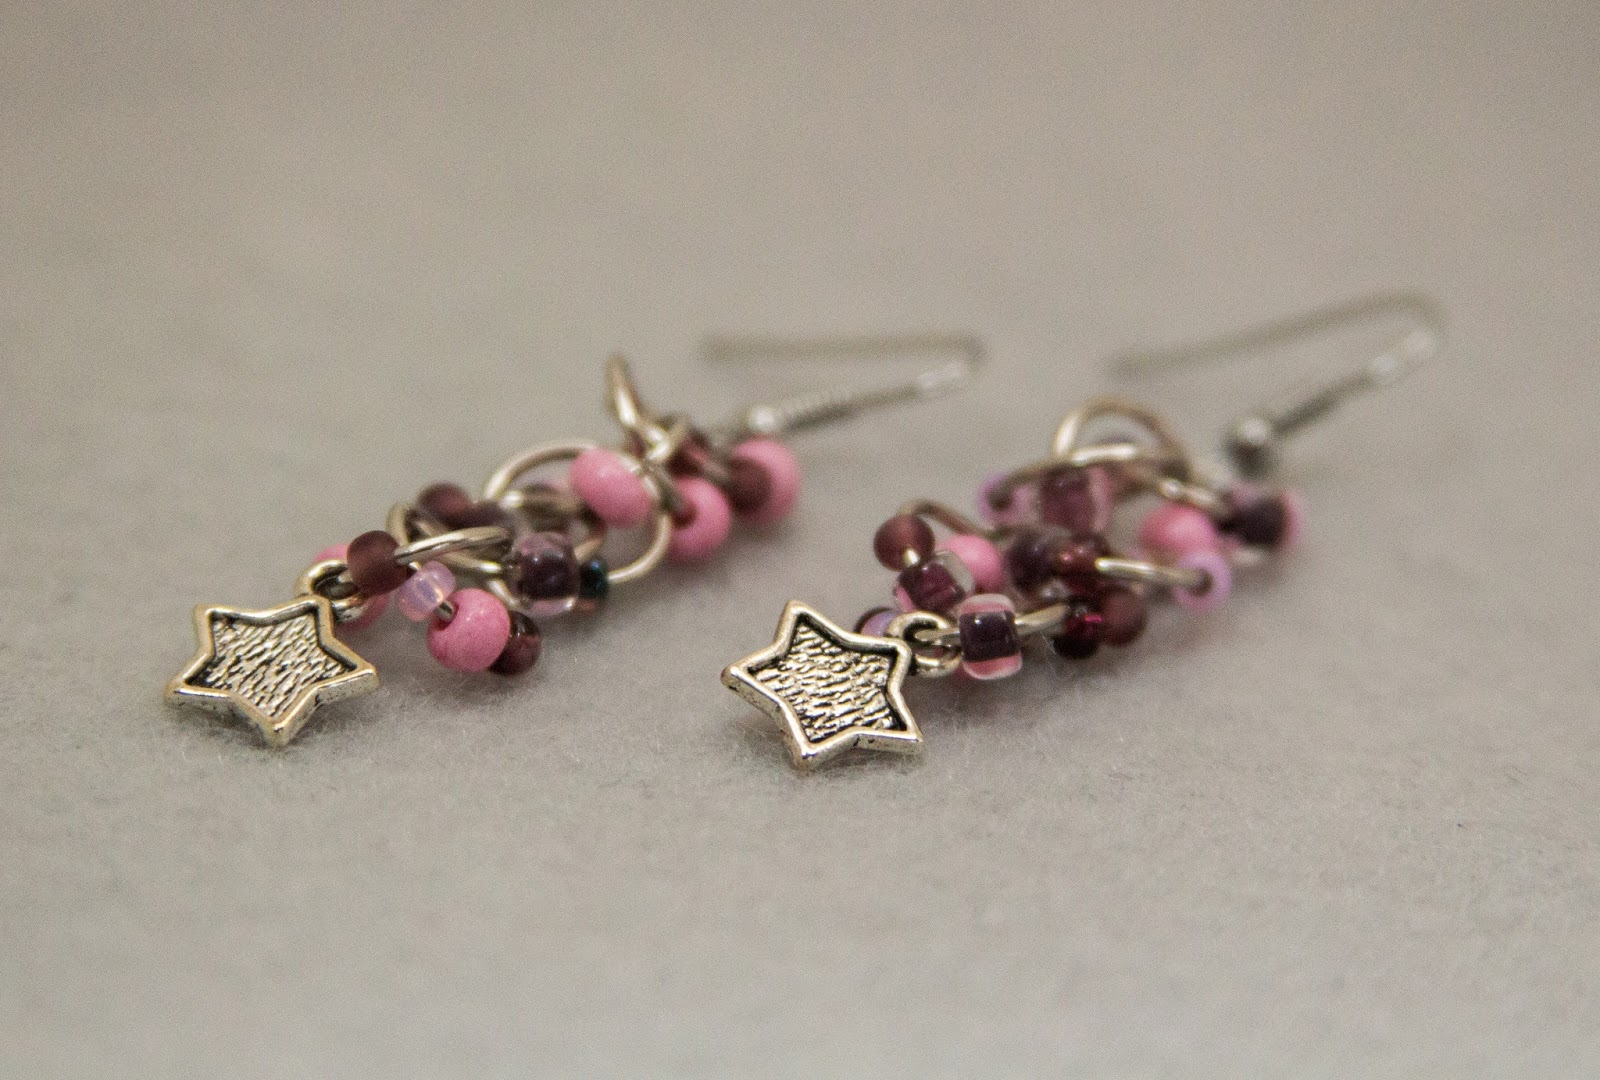 https://www.etsy.com/listing/183750009/beaded-dangle-earrings-celestial-purple